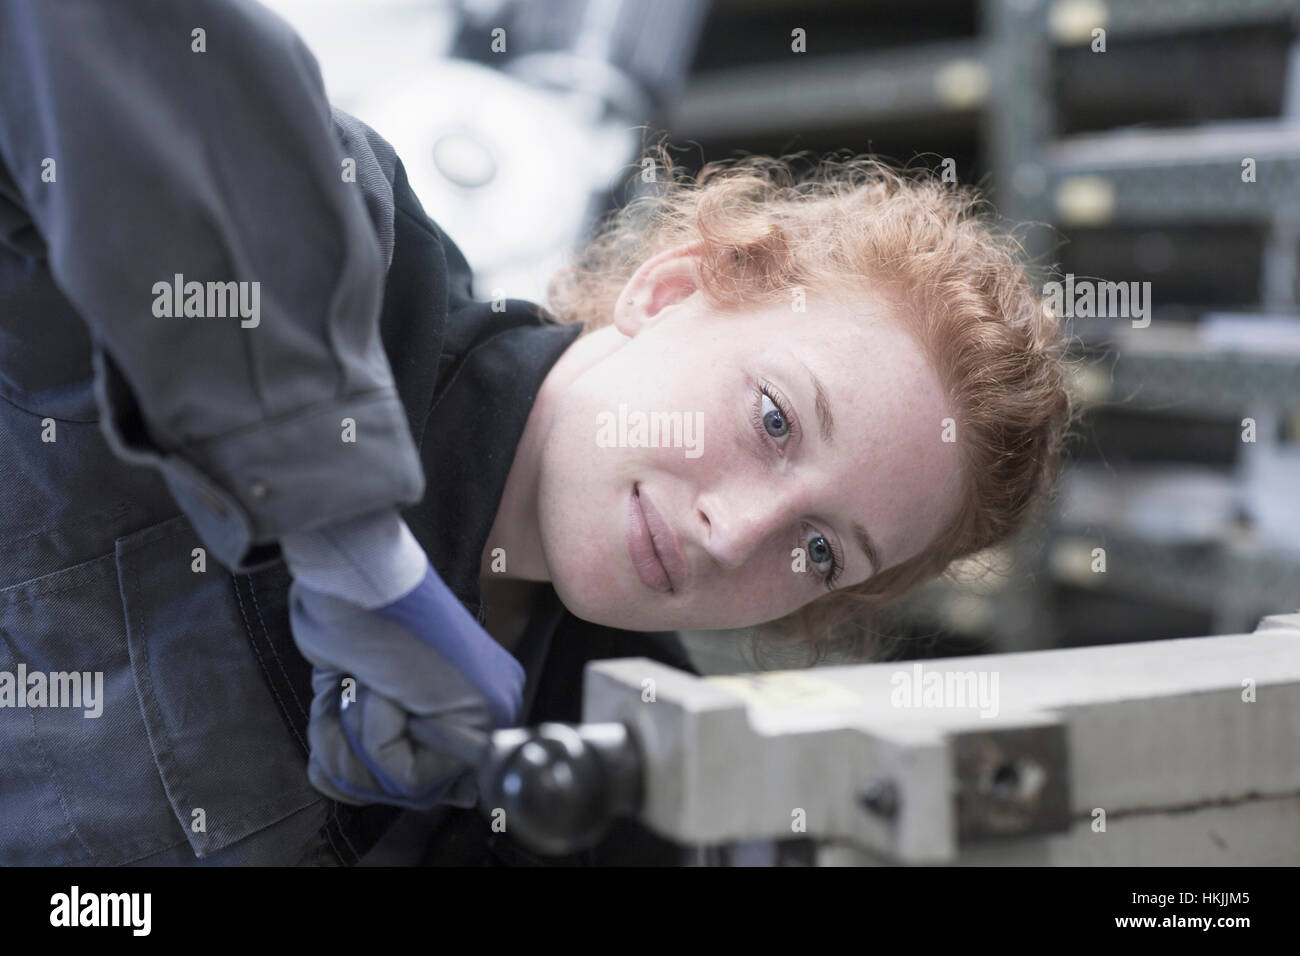 Young female engineer operating lever in an industrial plant, Freiburg im Breisgau, Baden-Württemberg, Germany - Stock Image